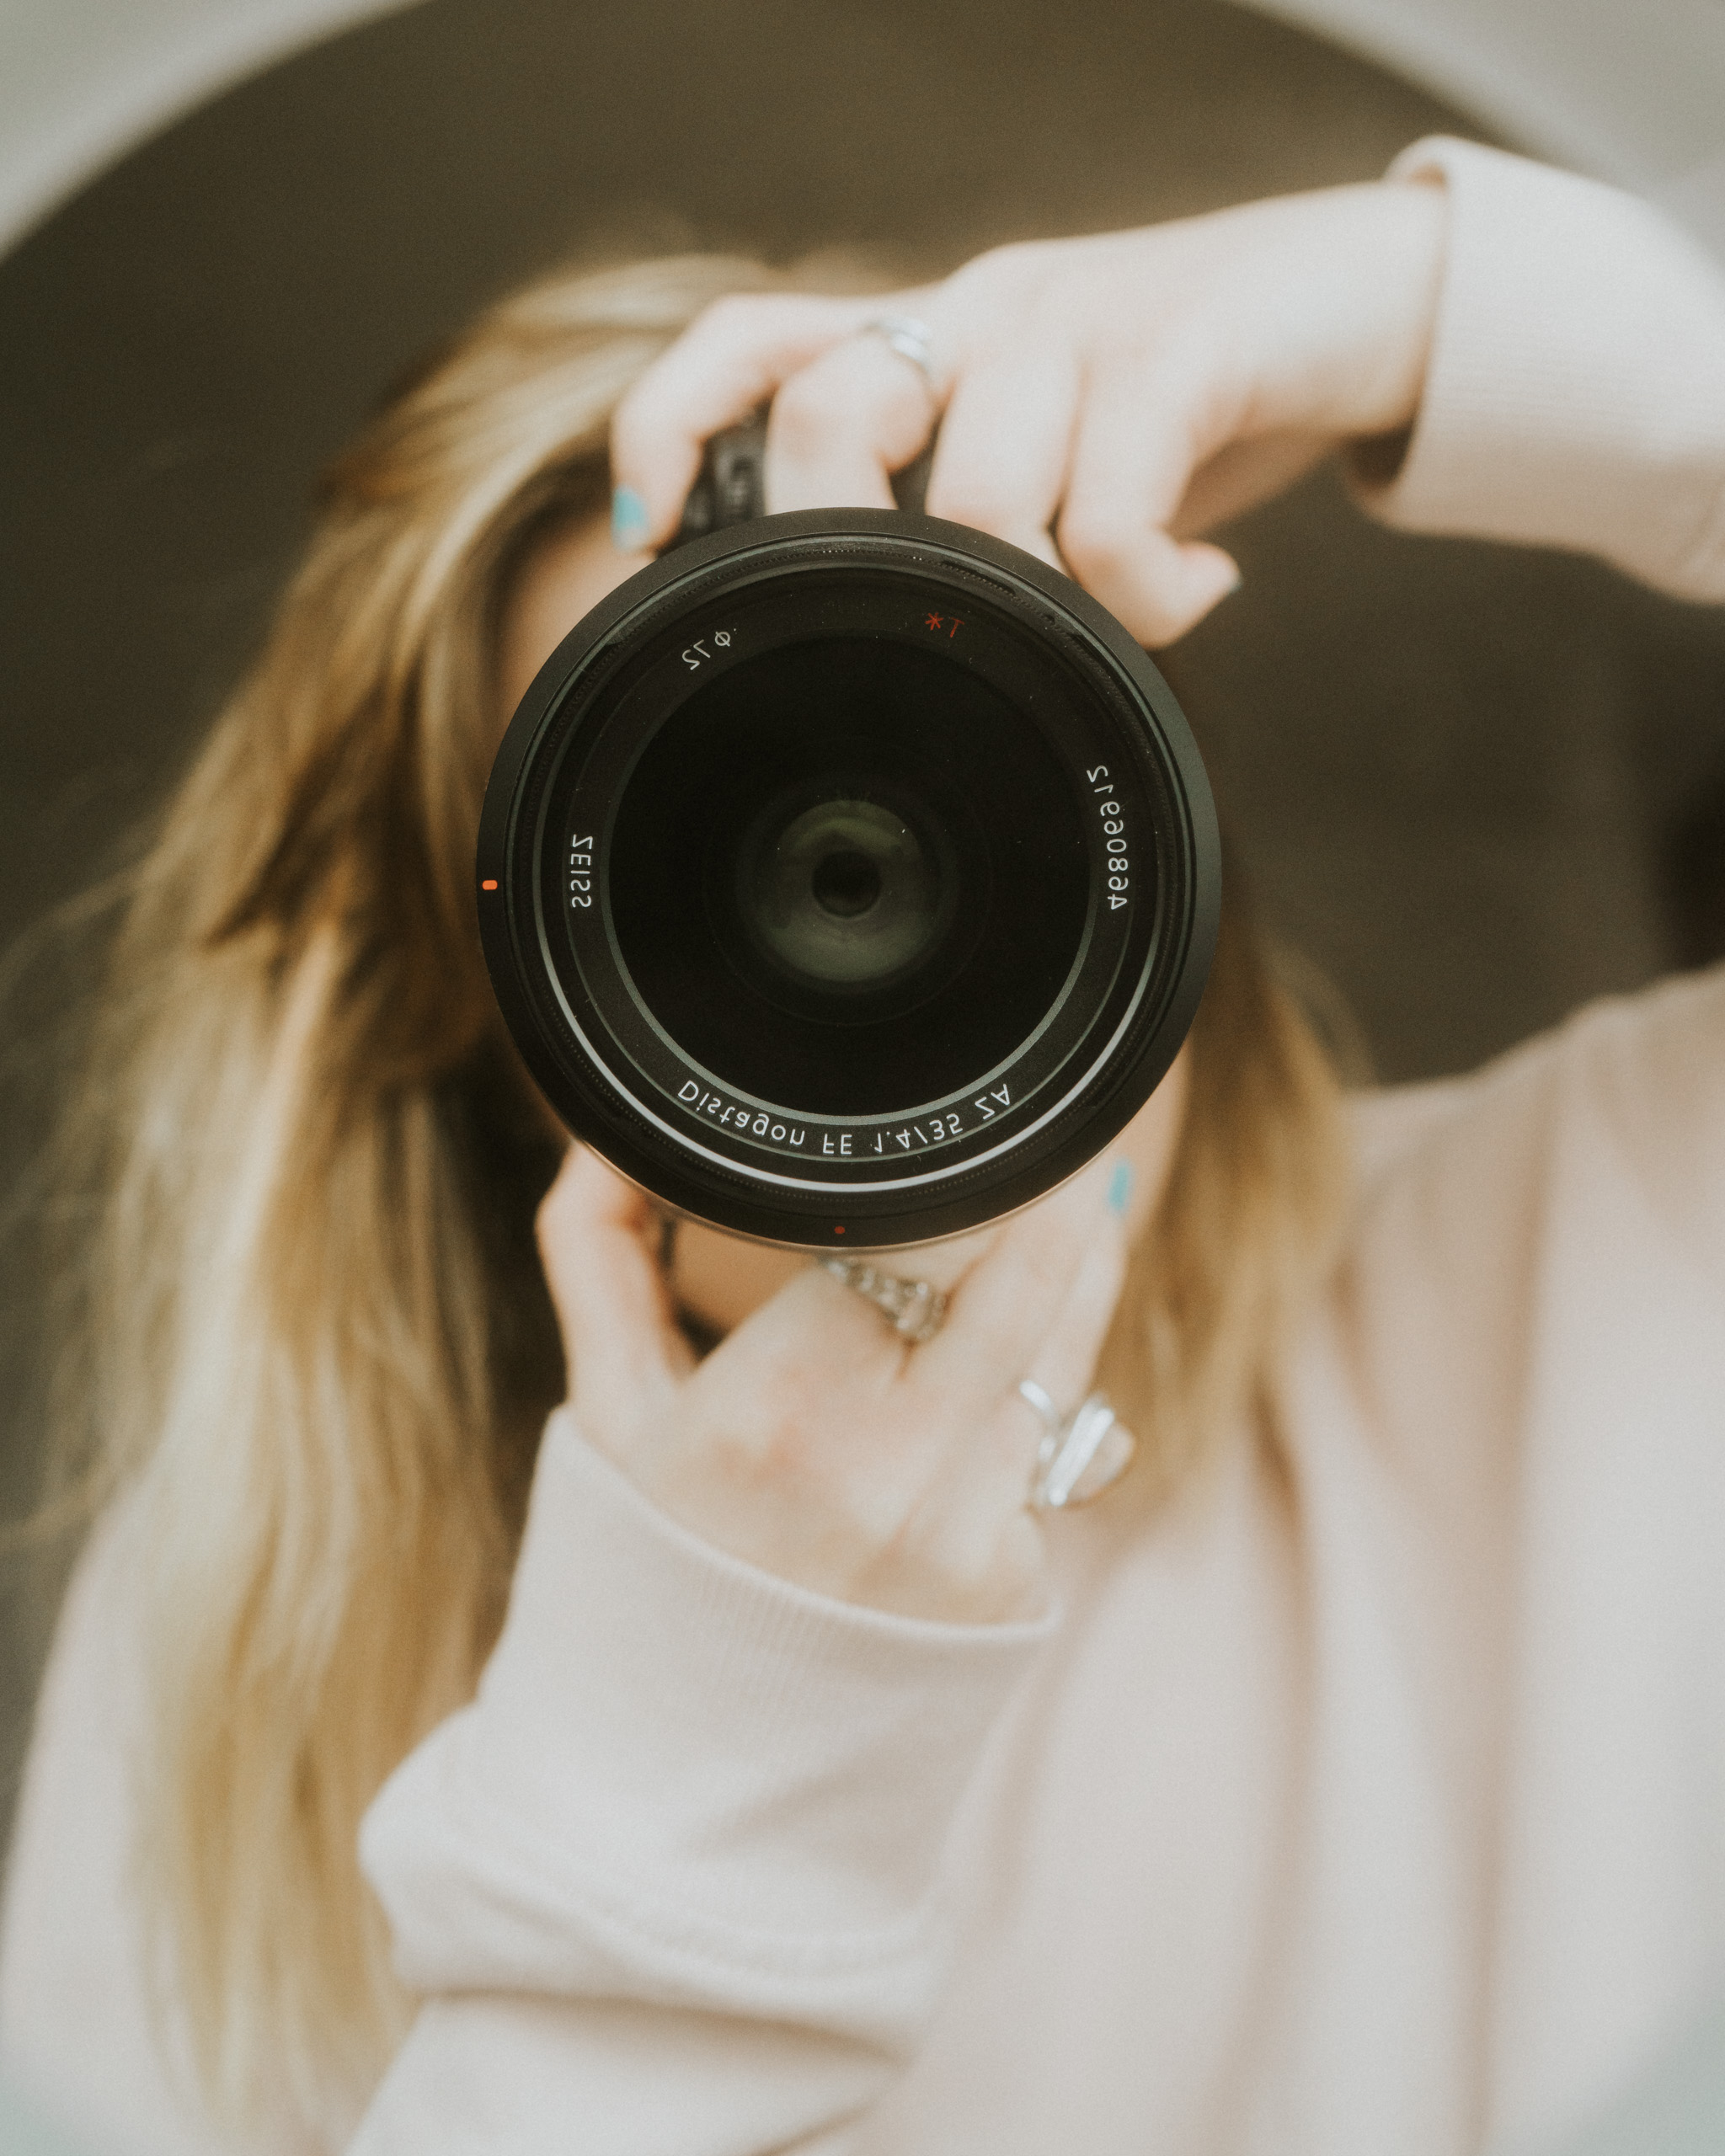 Mirrorless or DSLR? Why I went for Mirrorless!